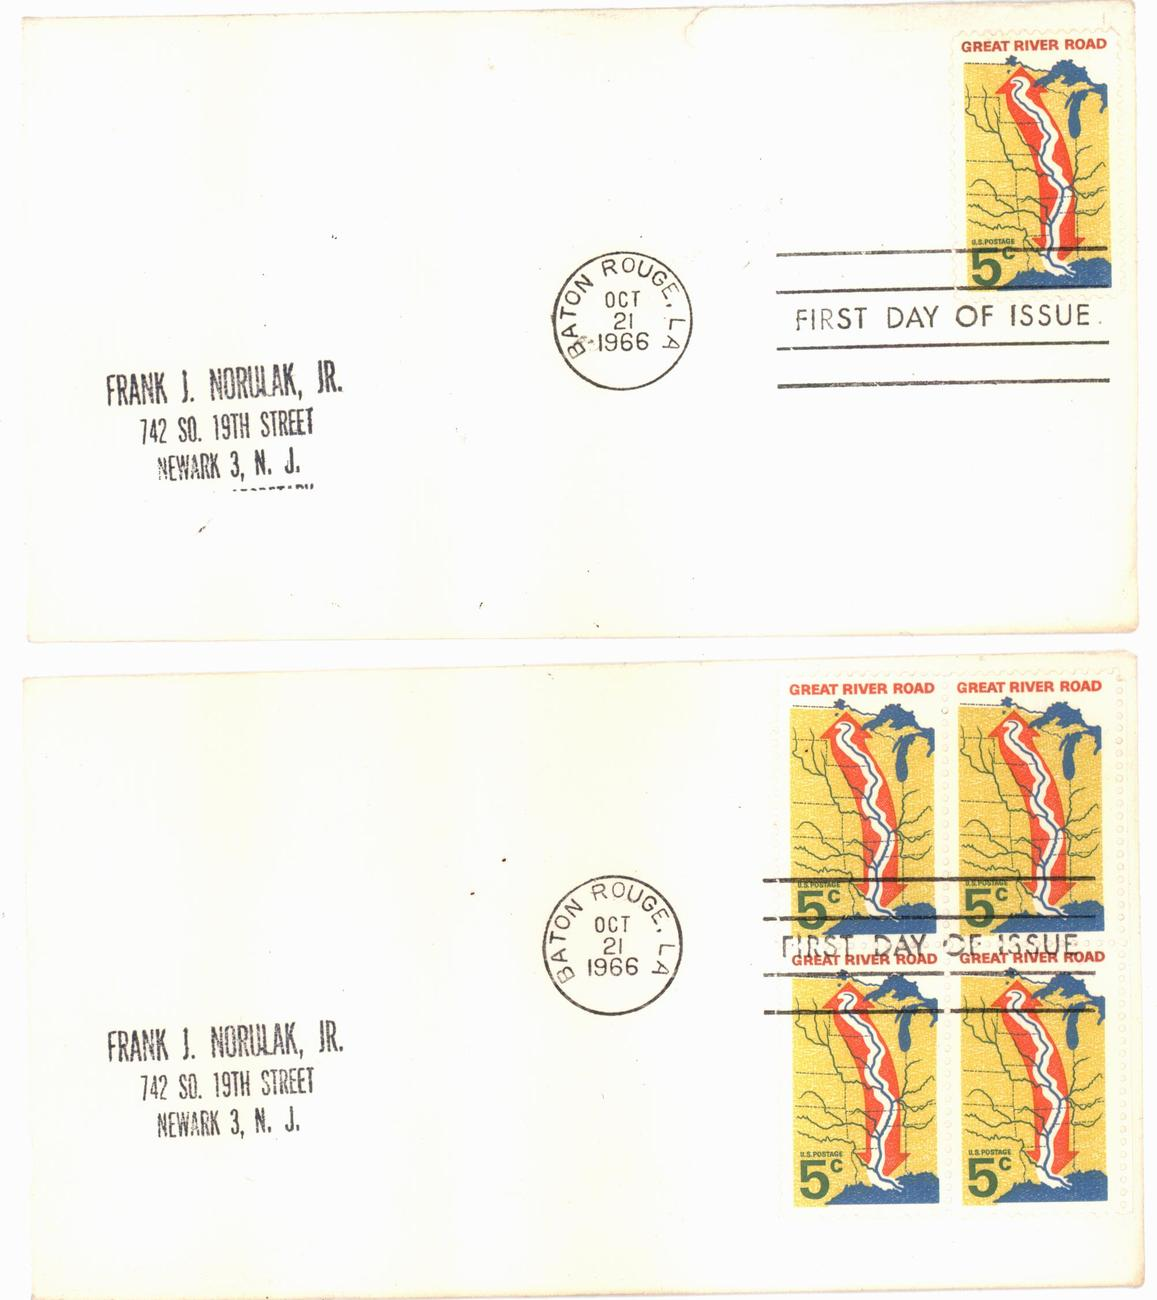 Great river road fdc